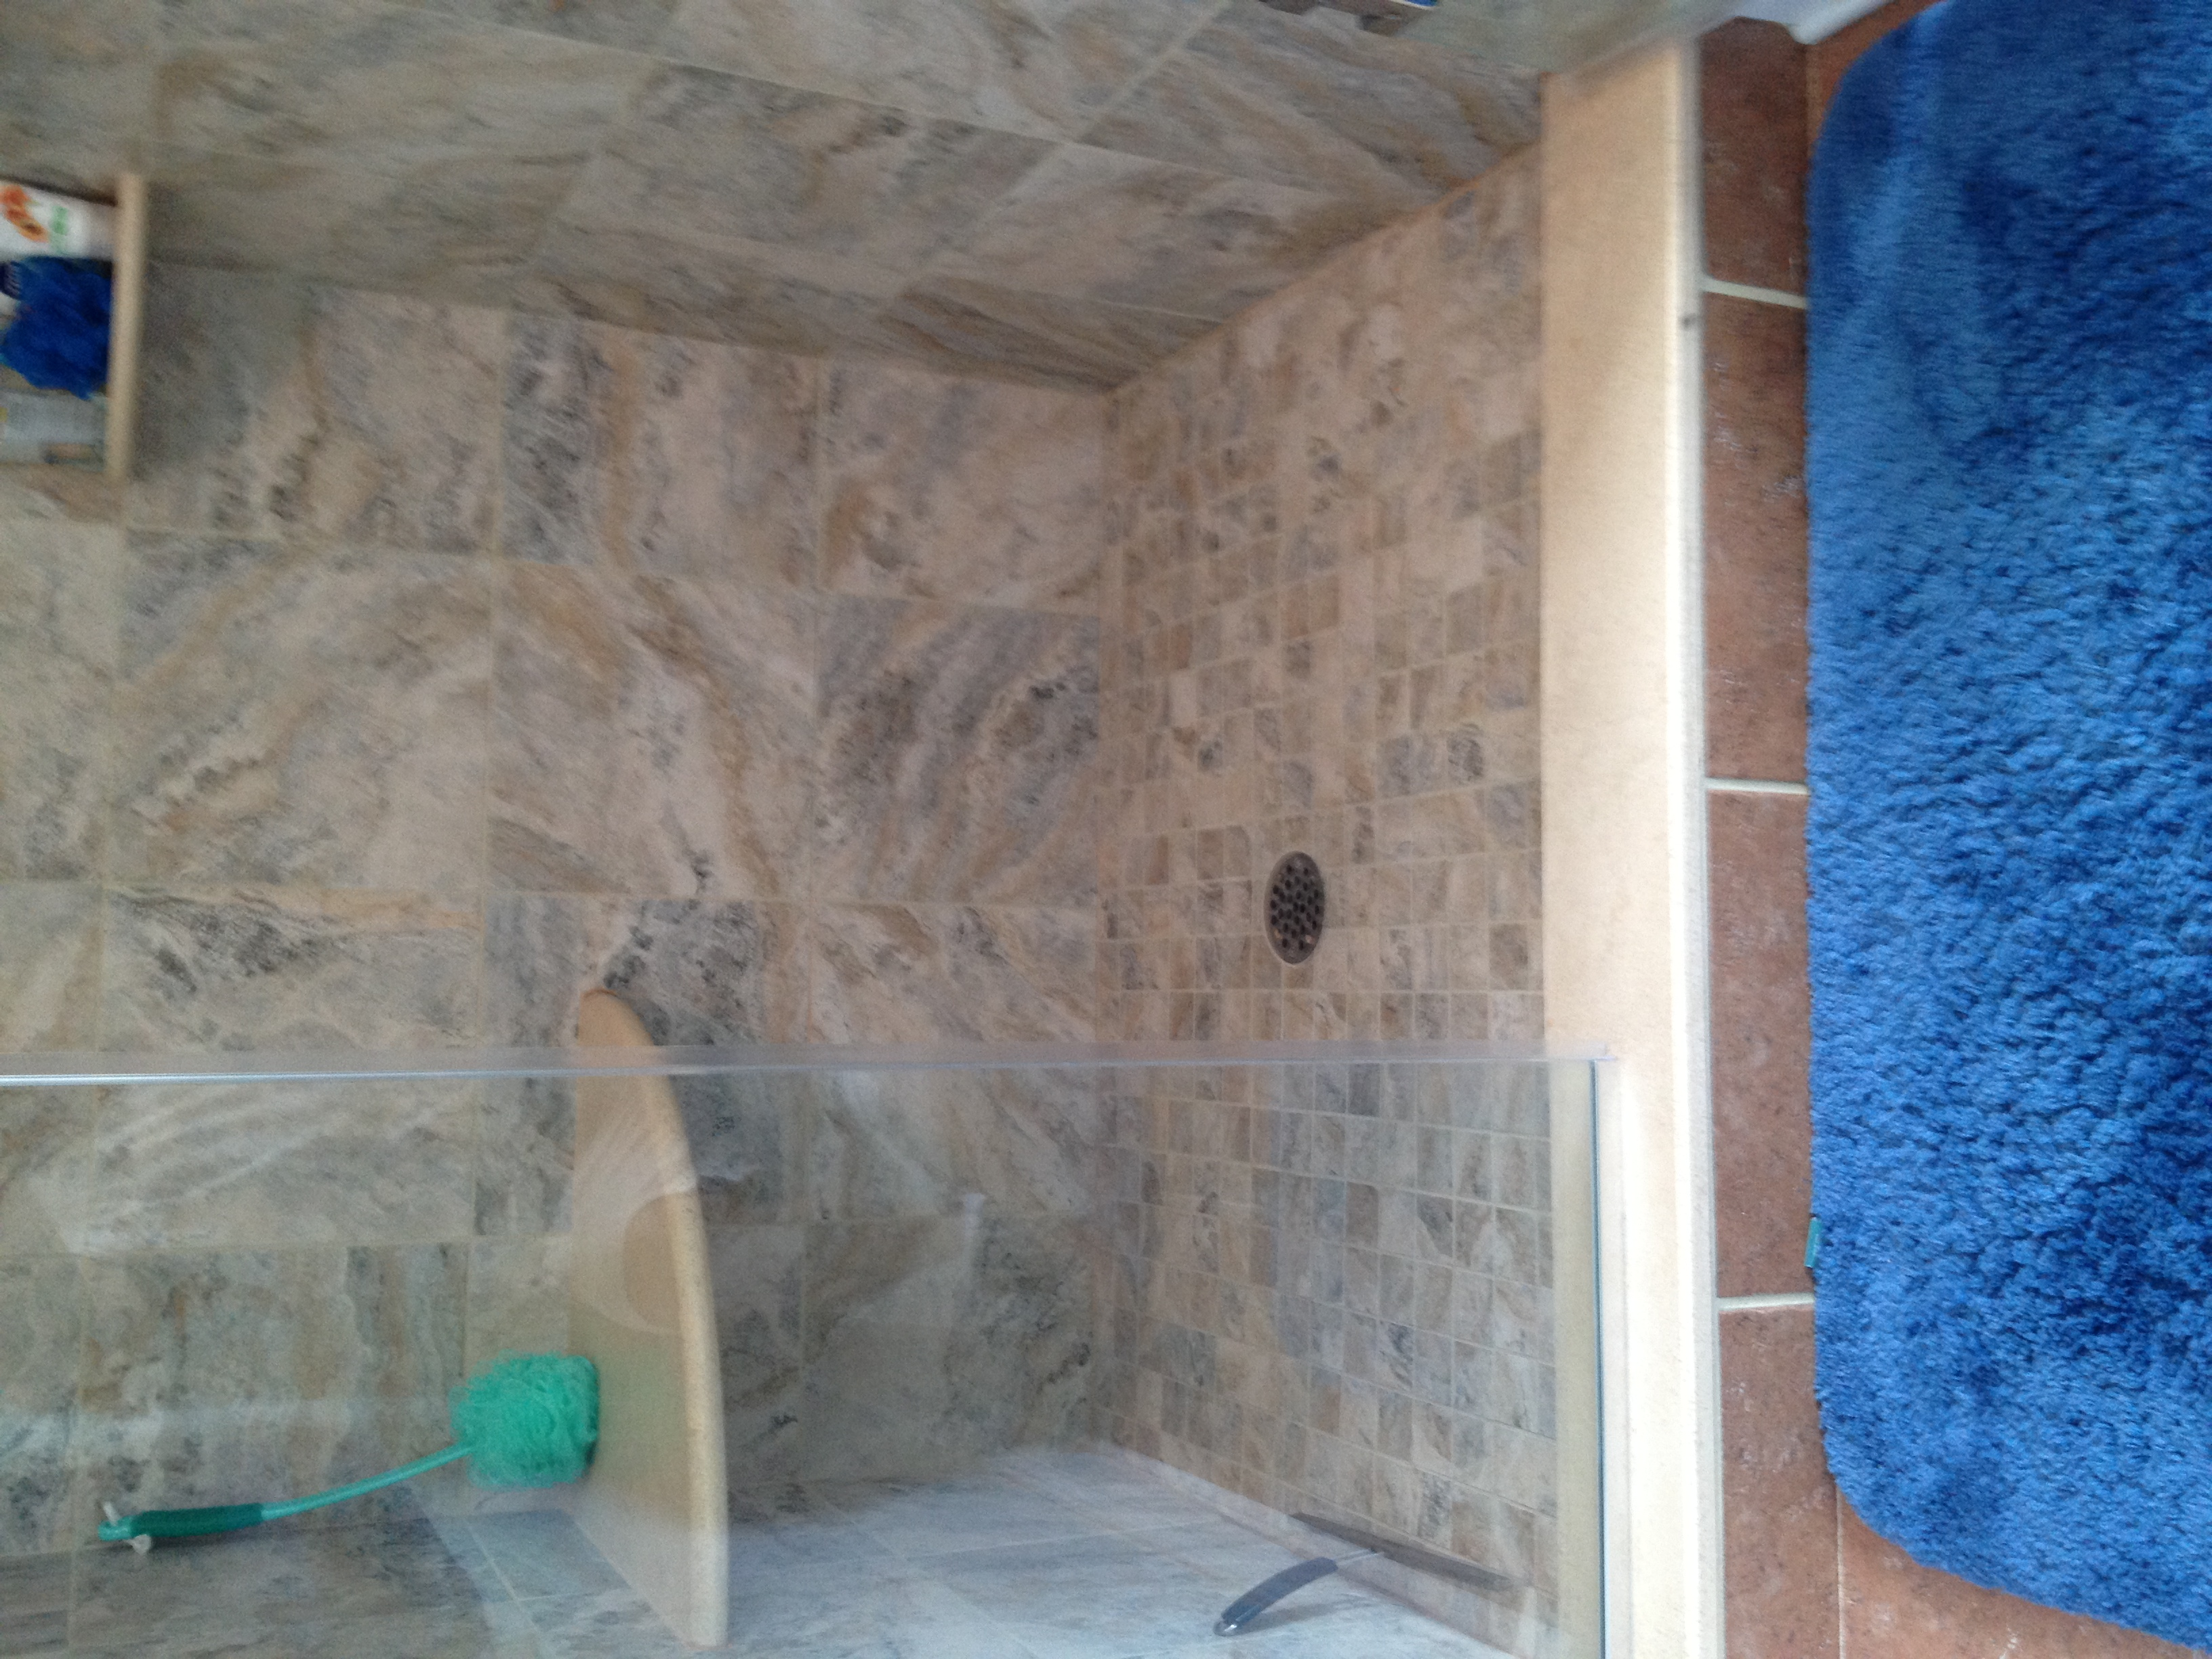 A new tiled shower with a frameless glass enclosure